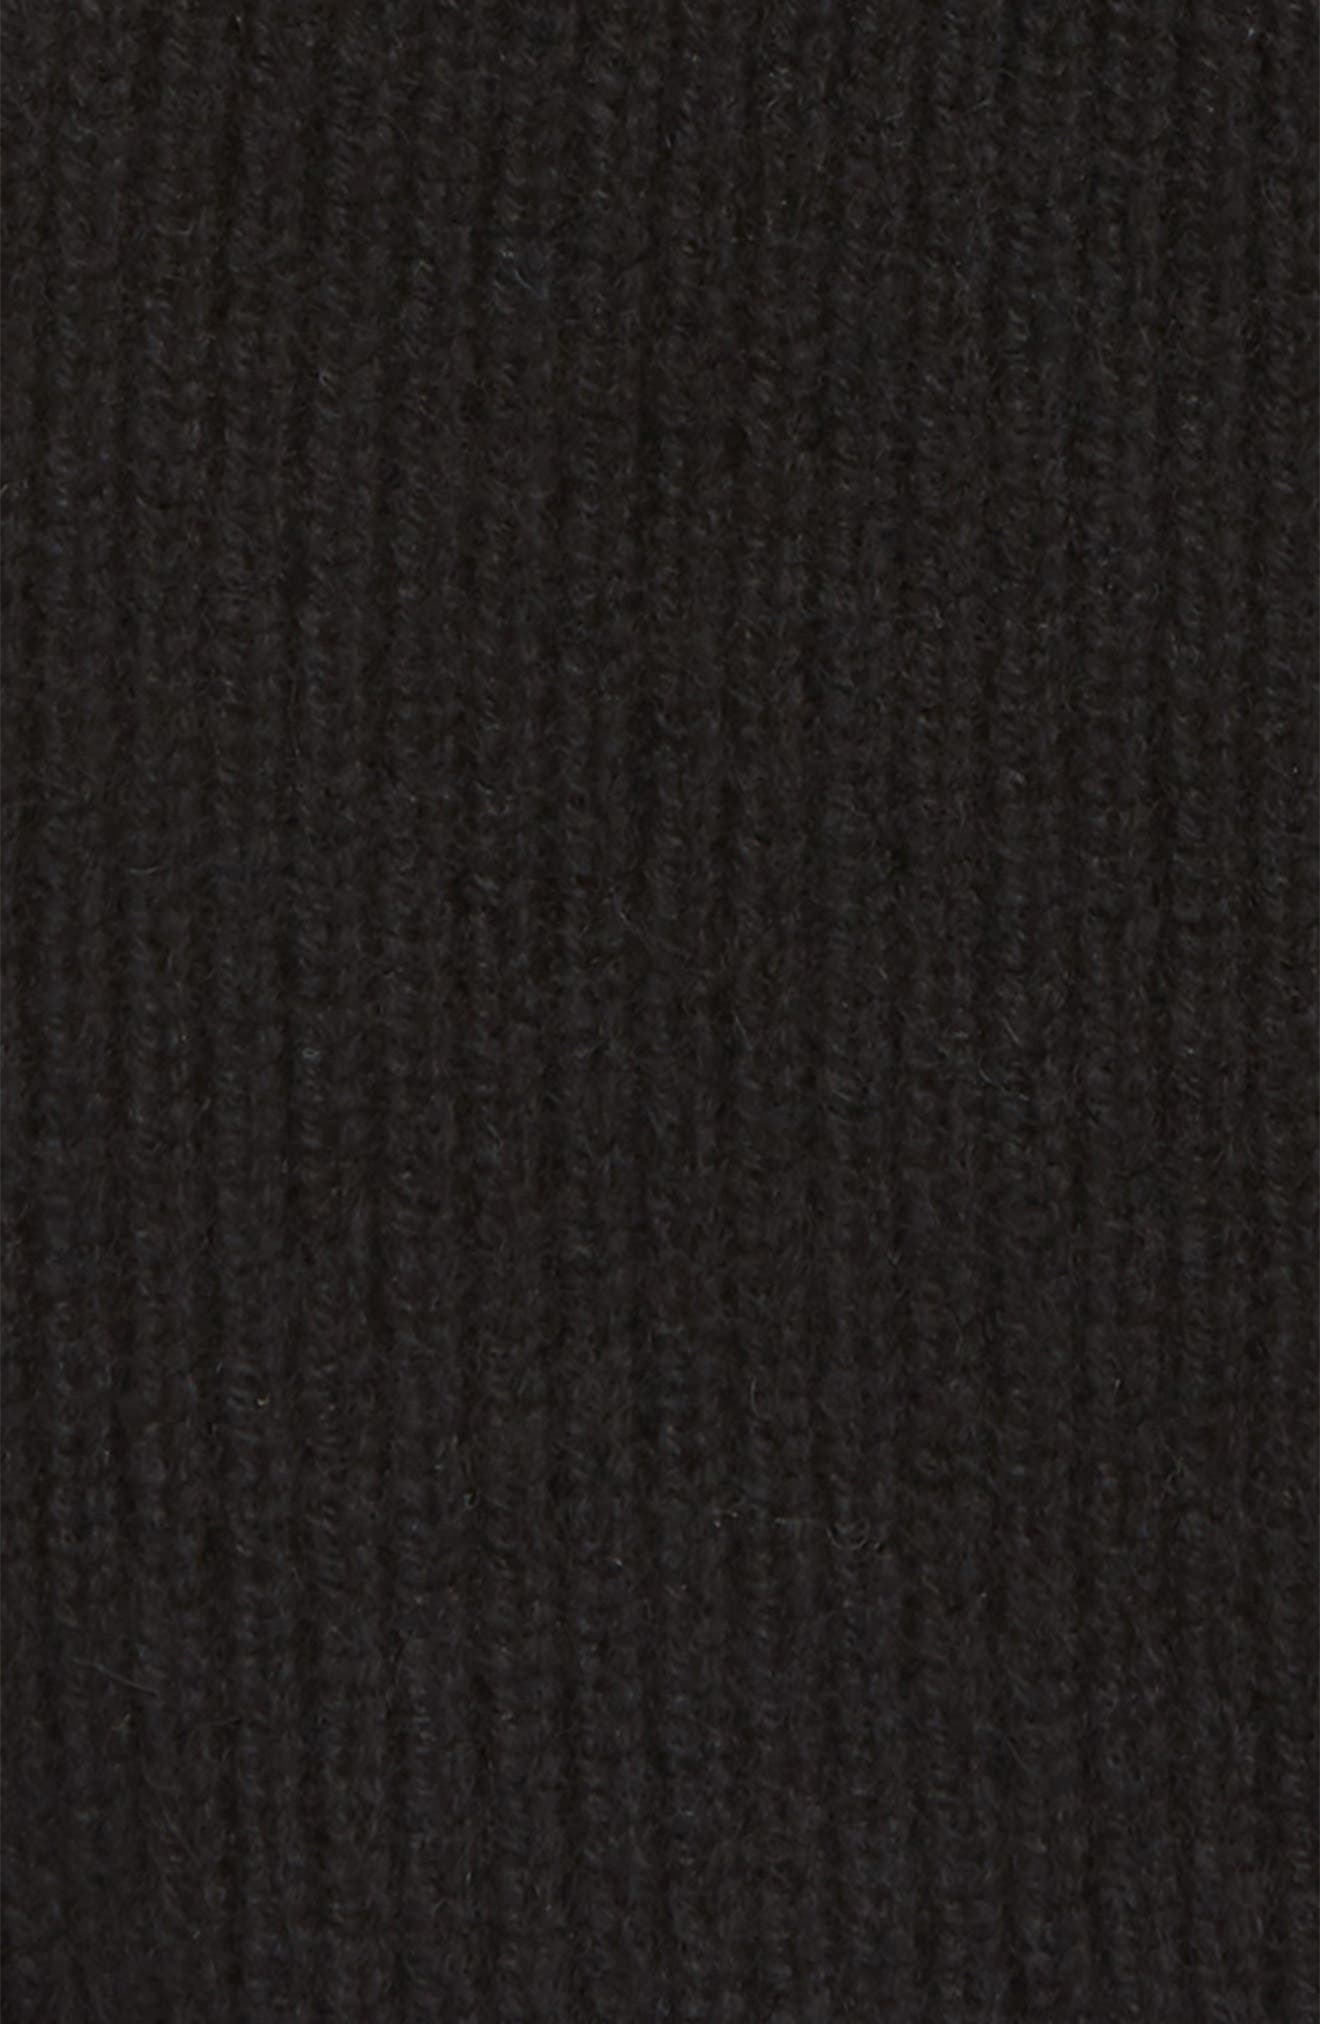 Ace Rib Knit Cashmere Beanie,                             Alternate thumbnail 2, color,                             001